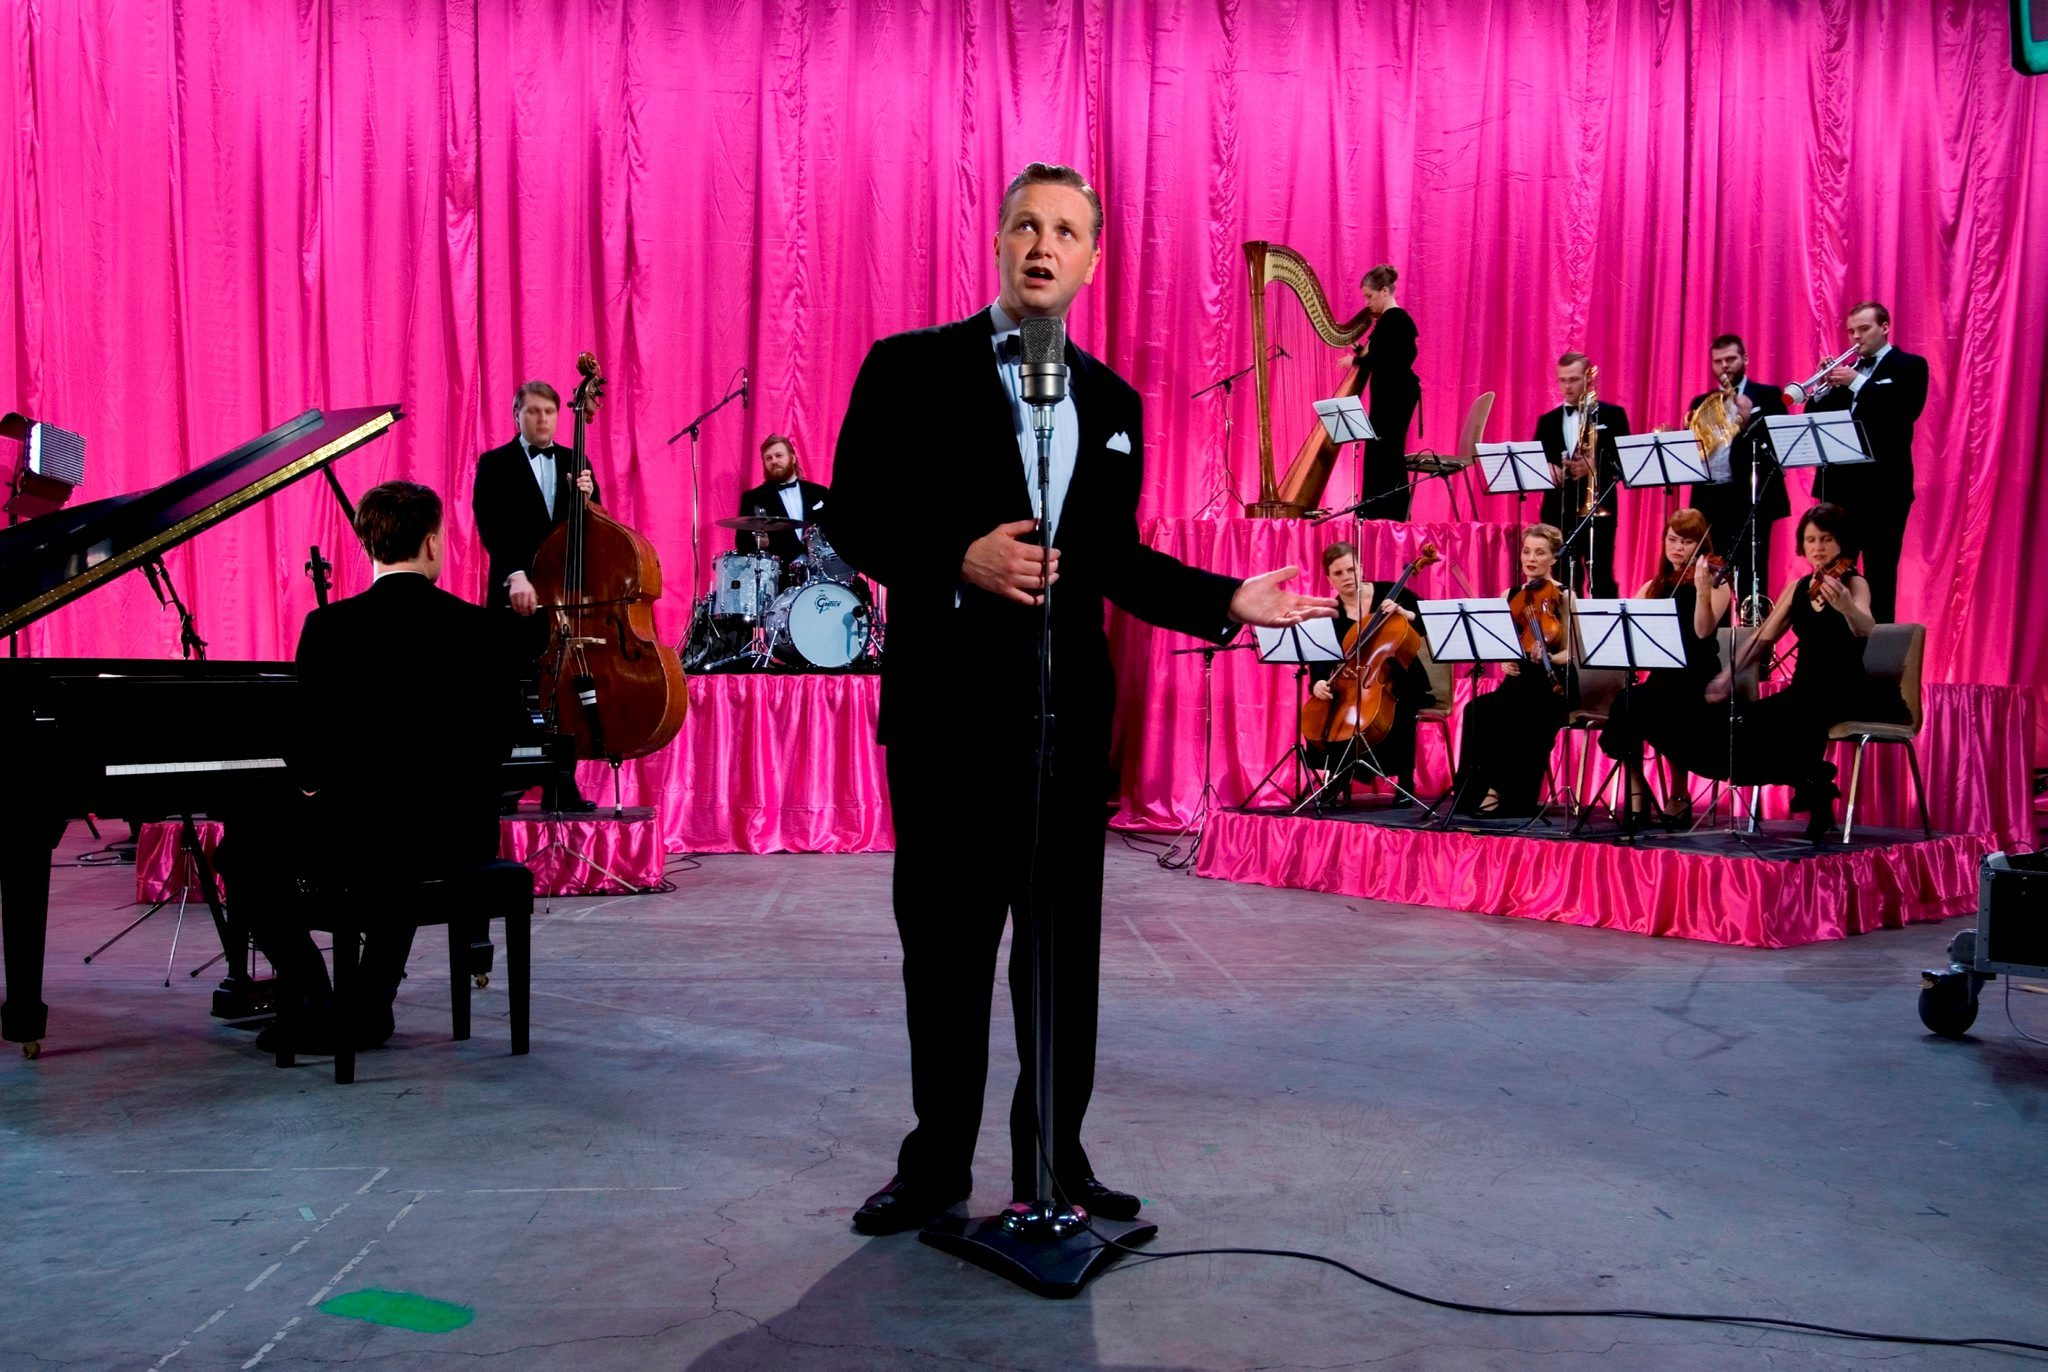 (Ragnar Kjartansson, 'God', 2007. Photo: Rafael Pinho. Courtesy of the artist, Luhring Augustine, New York and i8 Gallery, Reykjavík)